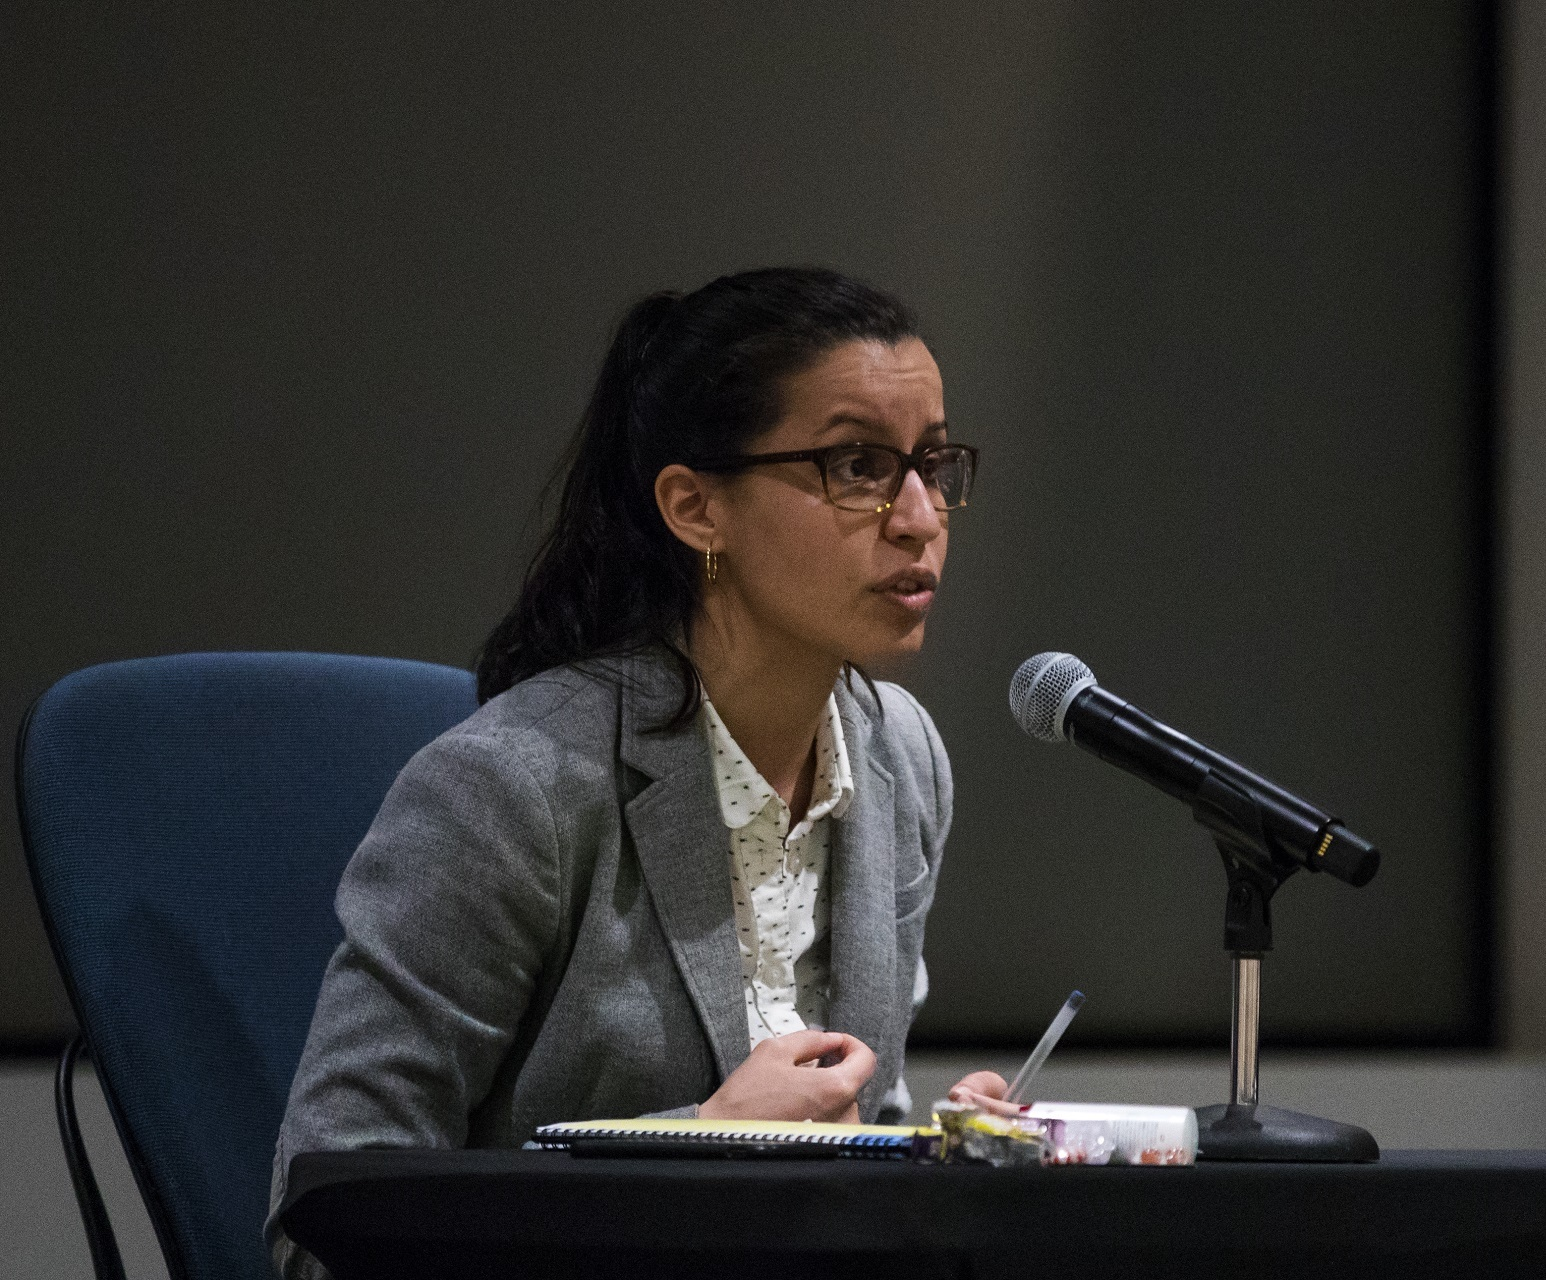 Public defender Tiffany Cabán at a Queens DA forum at CUNY Law. Eagle photo by Paul Frangipane.